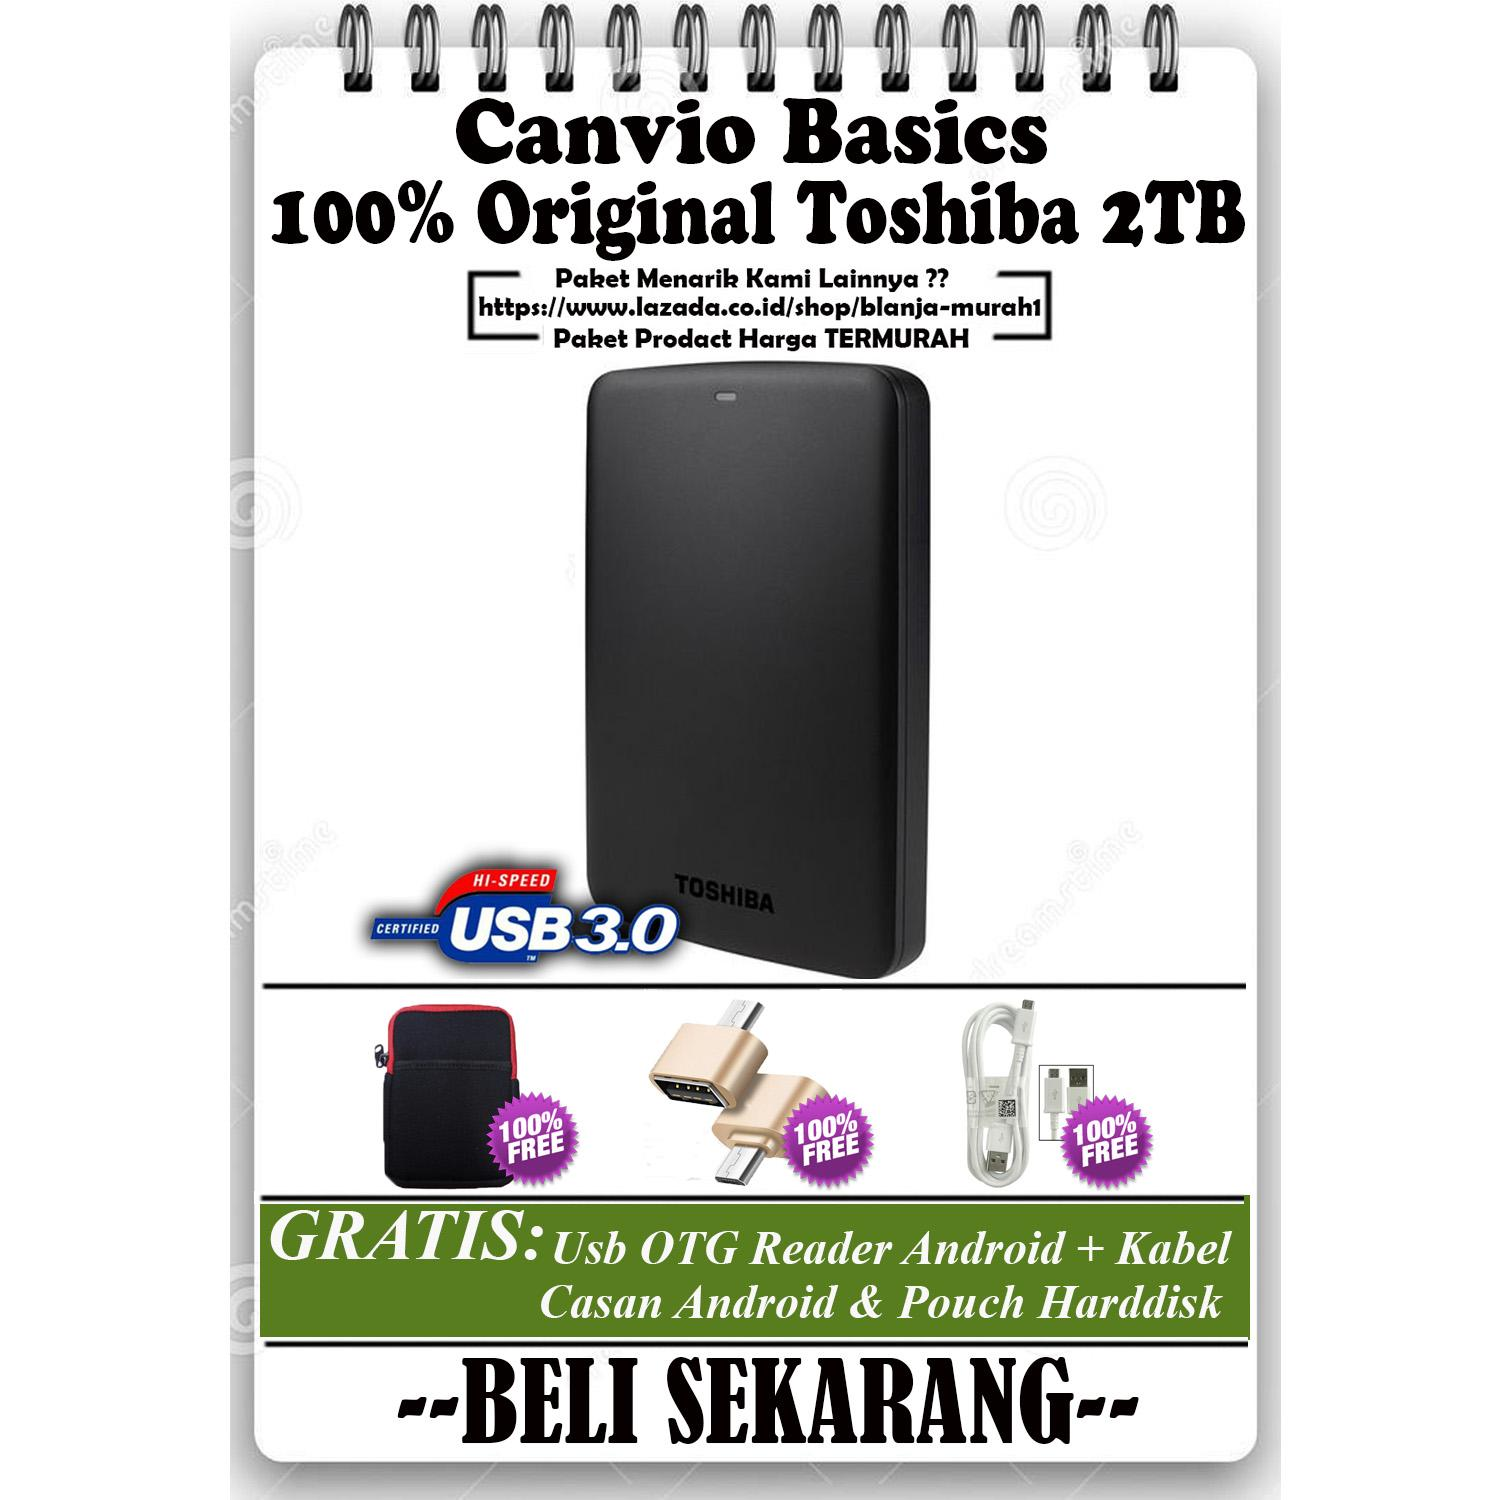 Toshiba Canvio Basics 2TB - HDD / HD / Hardisk Eksternal - Black GRATIS Pouch Harddisk Ext + Usb OTG Reader Android & Kabel Charger Micro Android